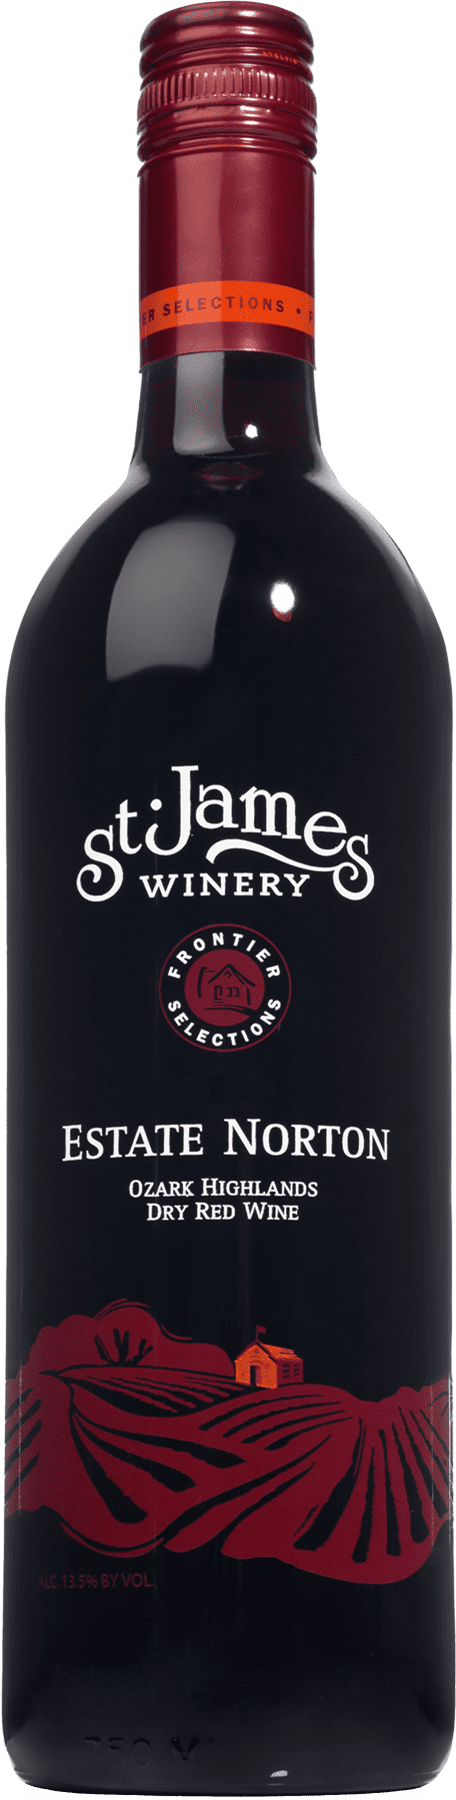 Estate Norton Ozark Highlands Dry Red Wine - St. James Winery Missouri